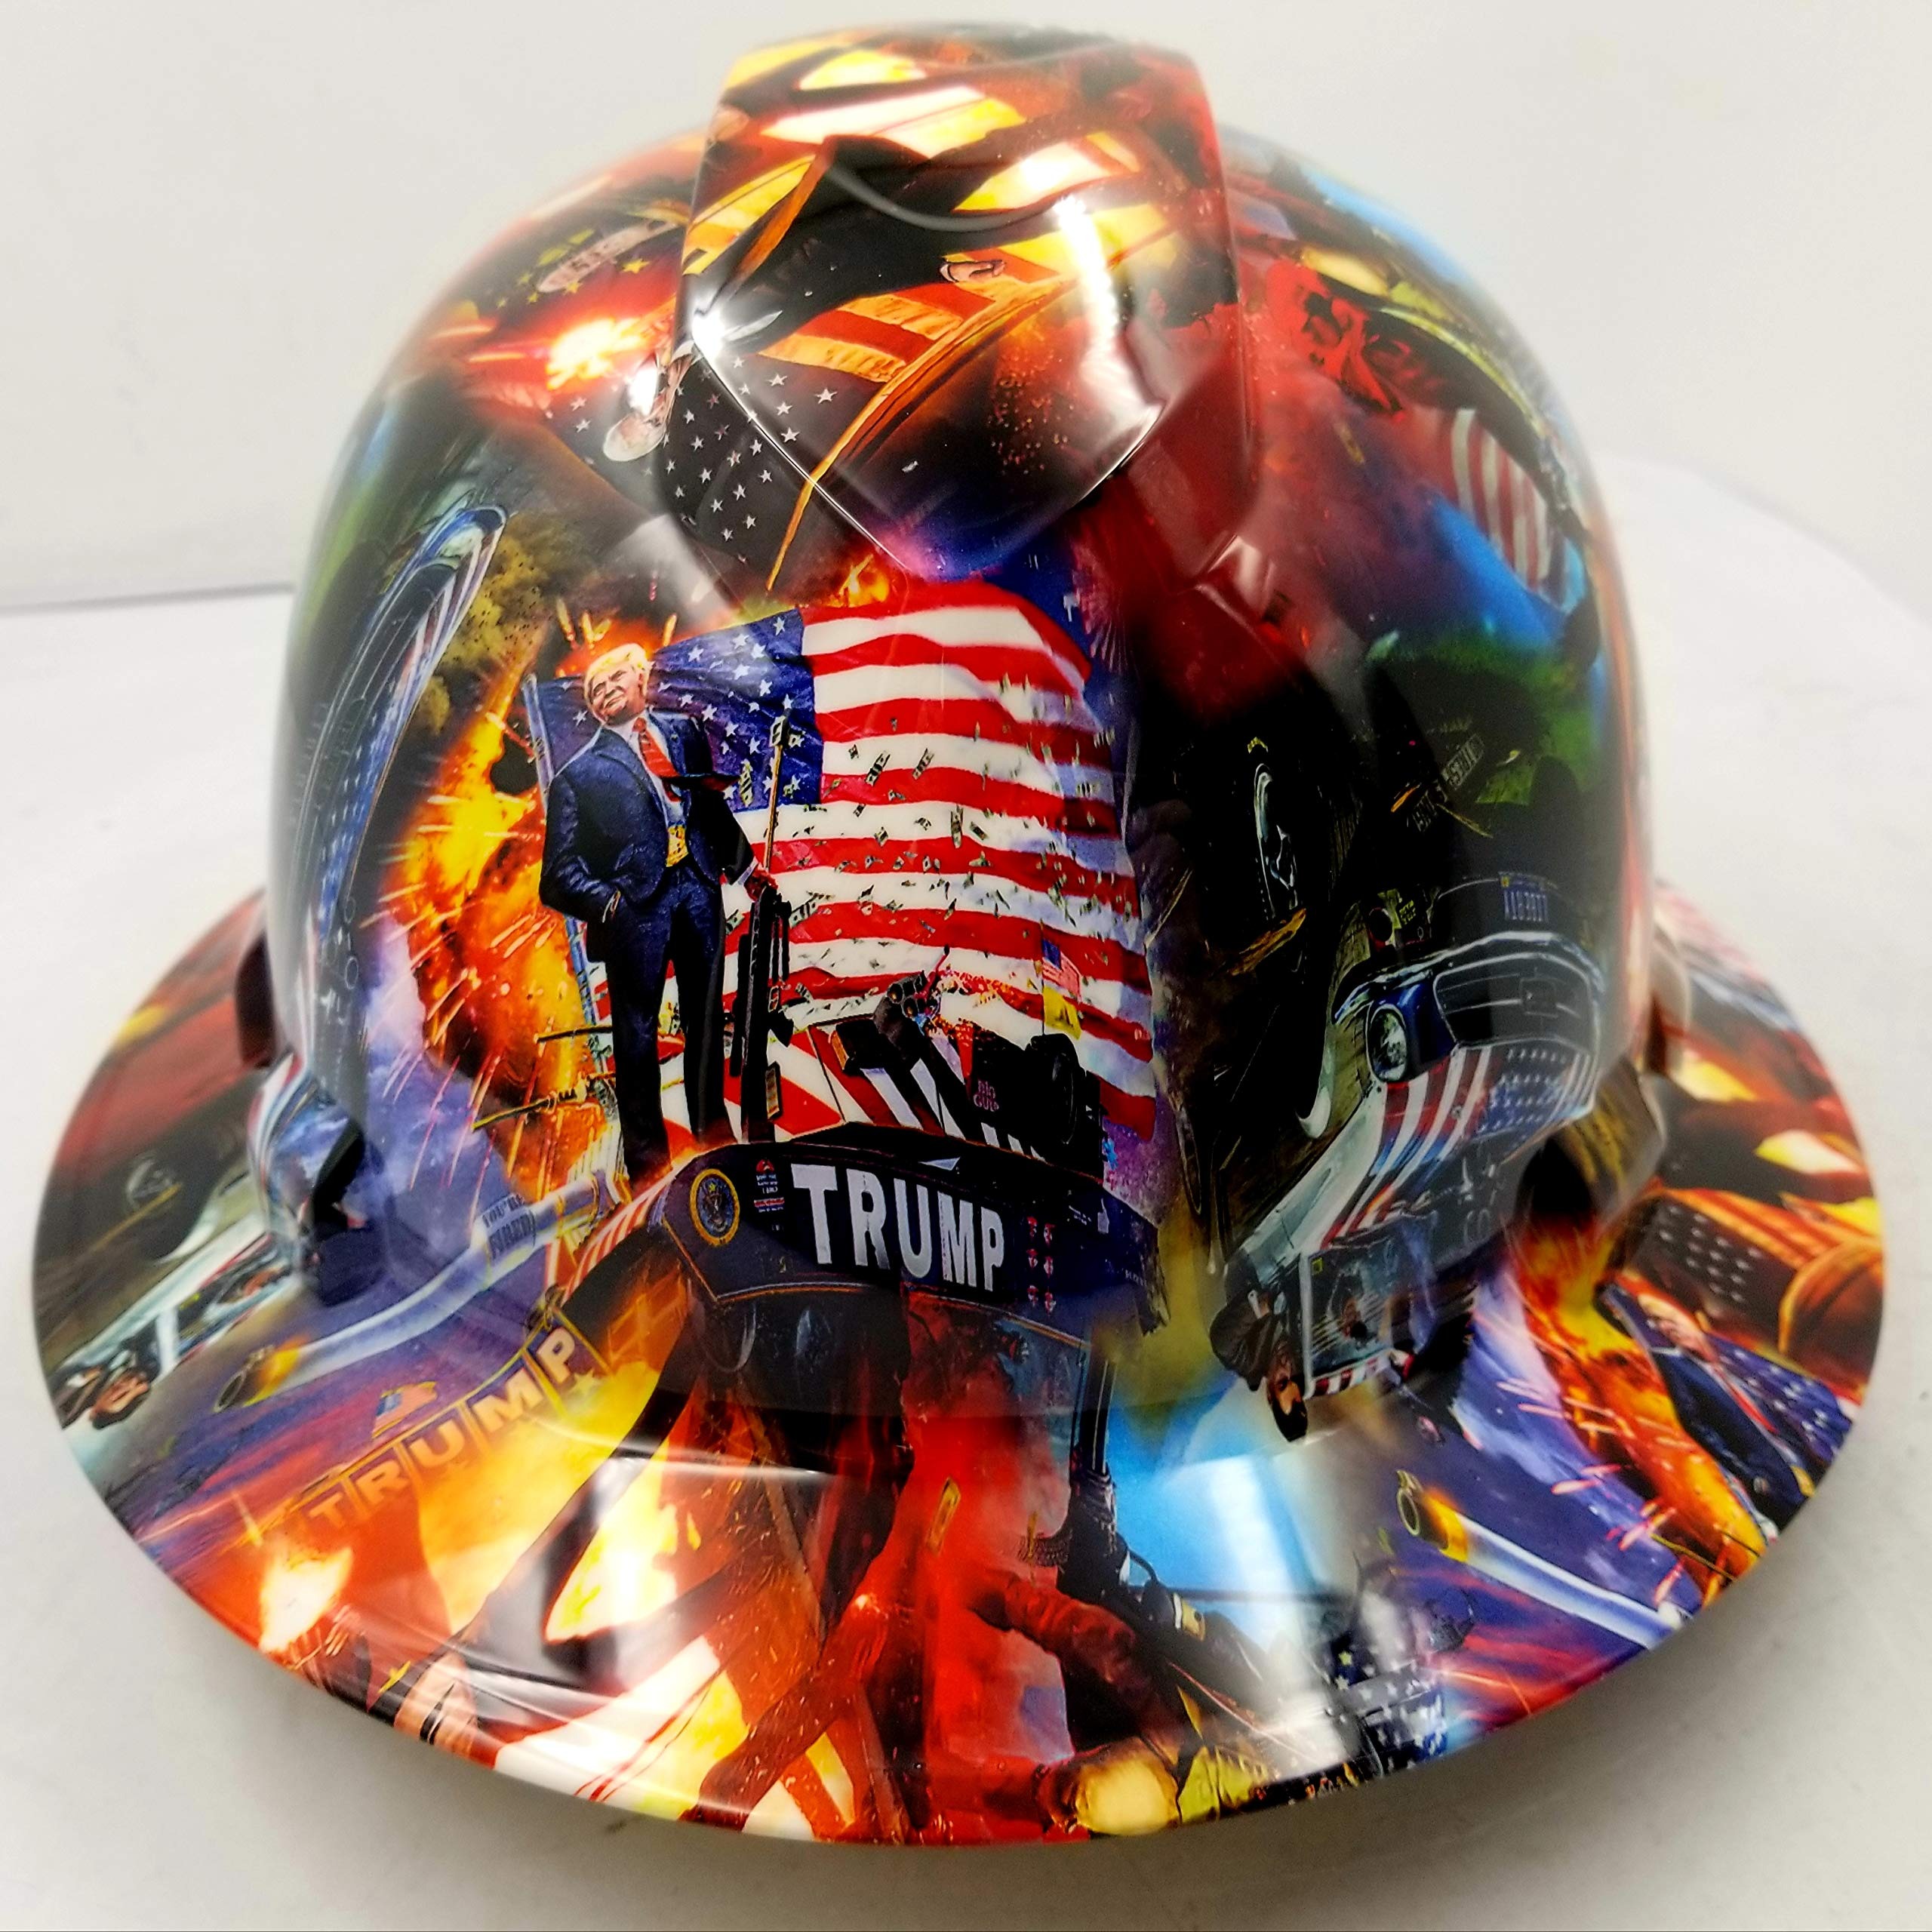 Wet Works Imaging Customized Pyramex Full Brim President Trump Donald Trump Hard HAT with Ratcheting Suspension Custom LIDS Crazy Sick Construction PPE by Wet Works Imaging